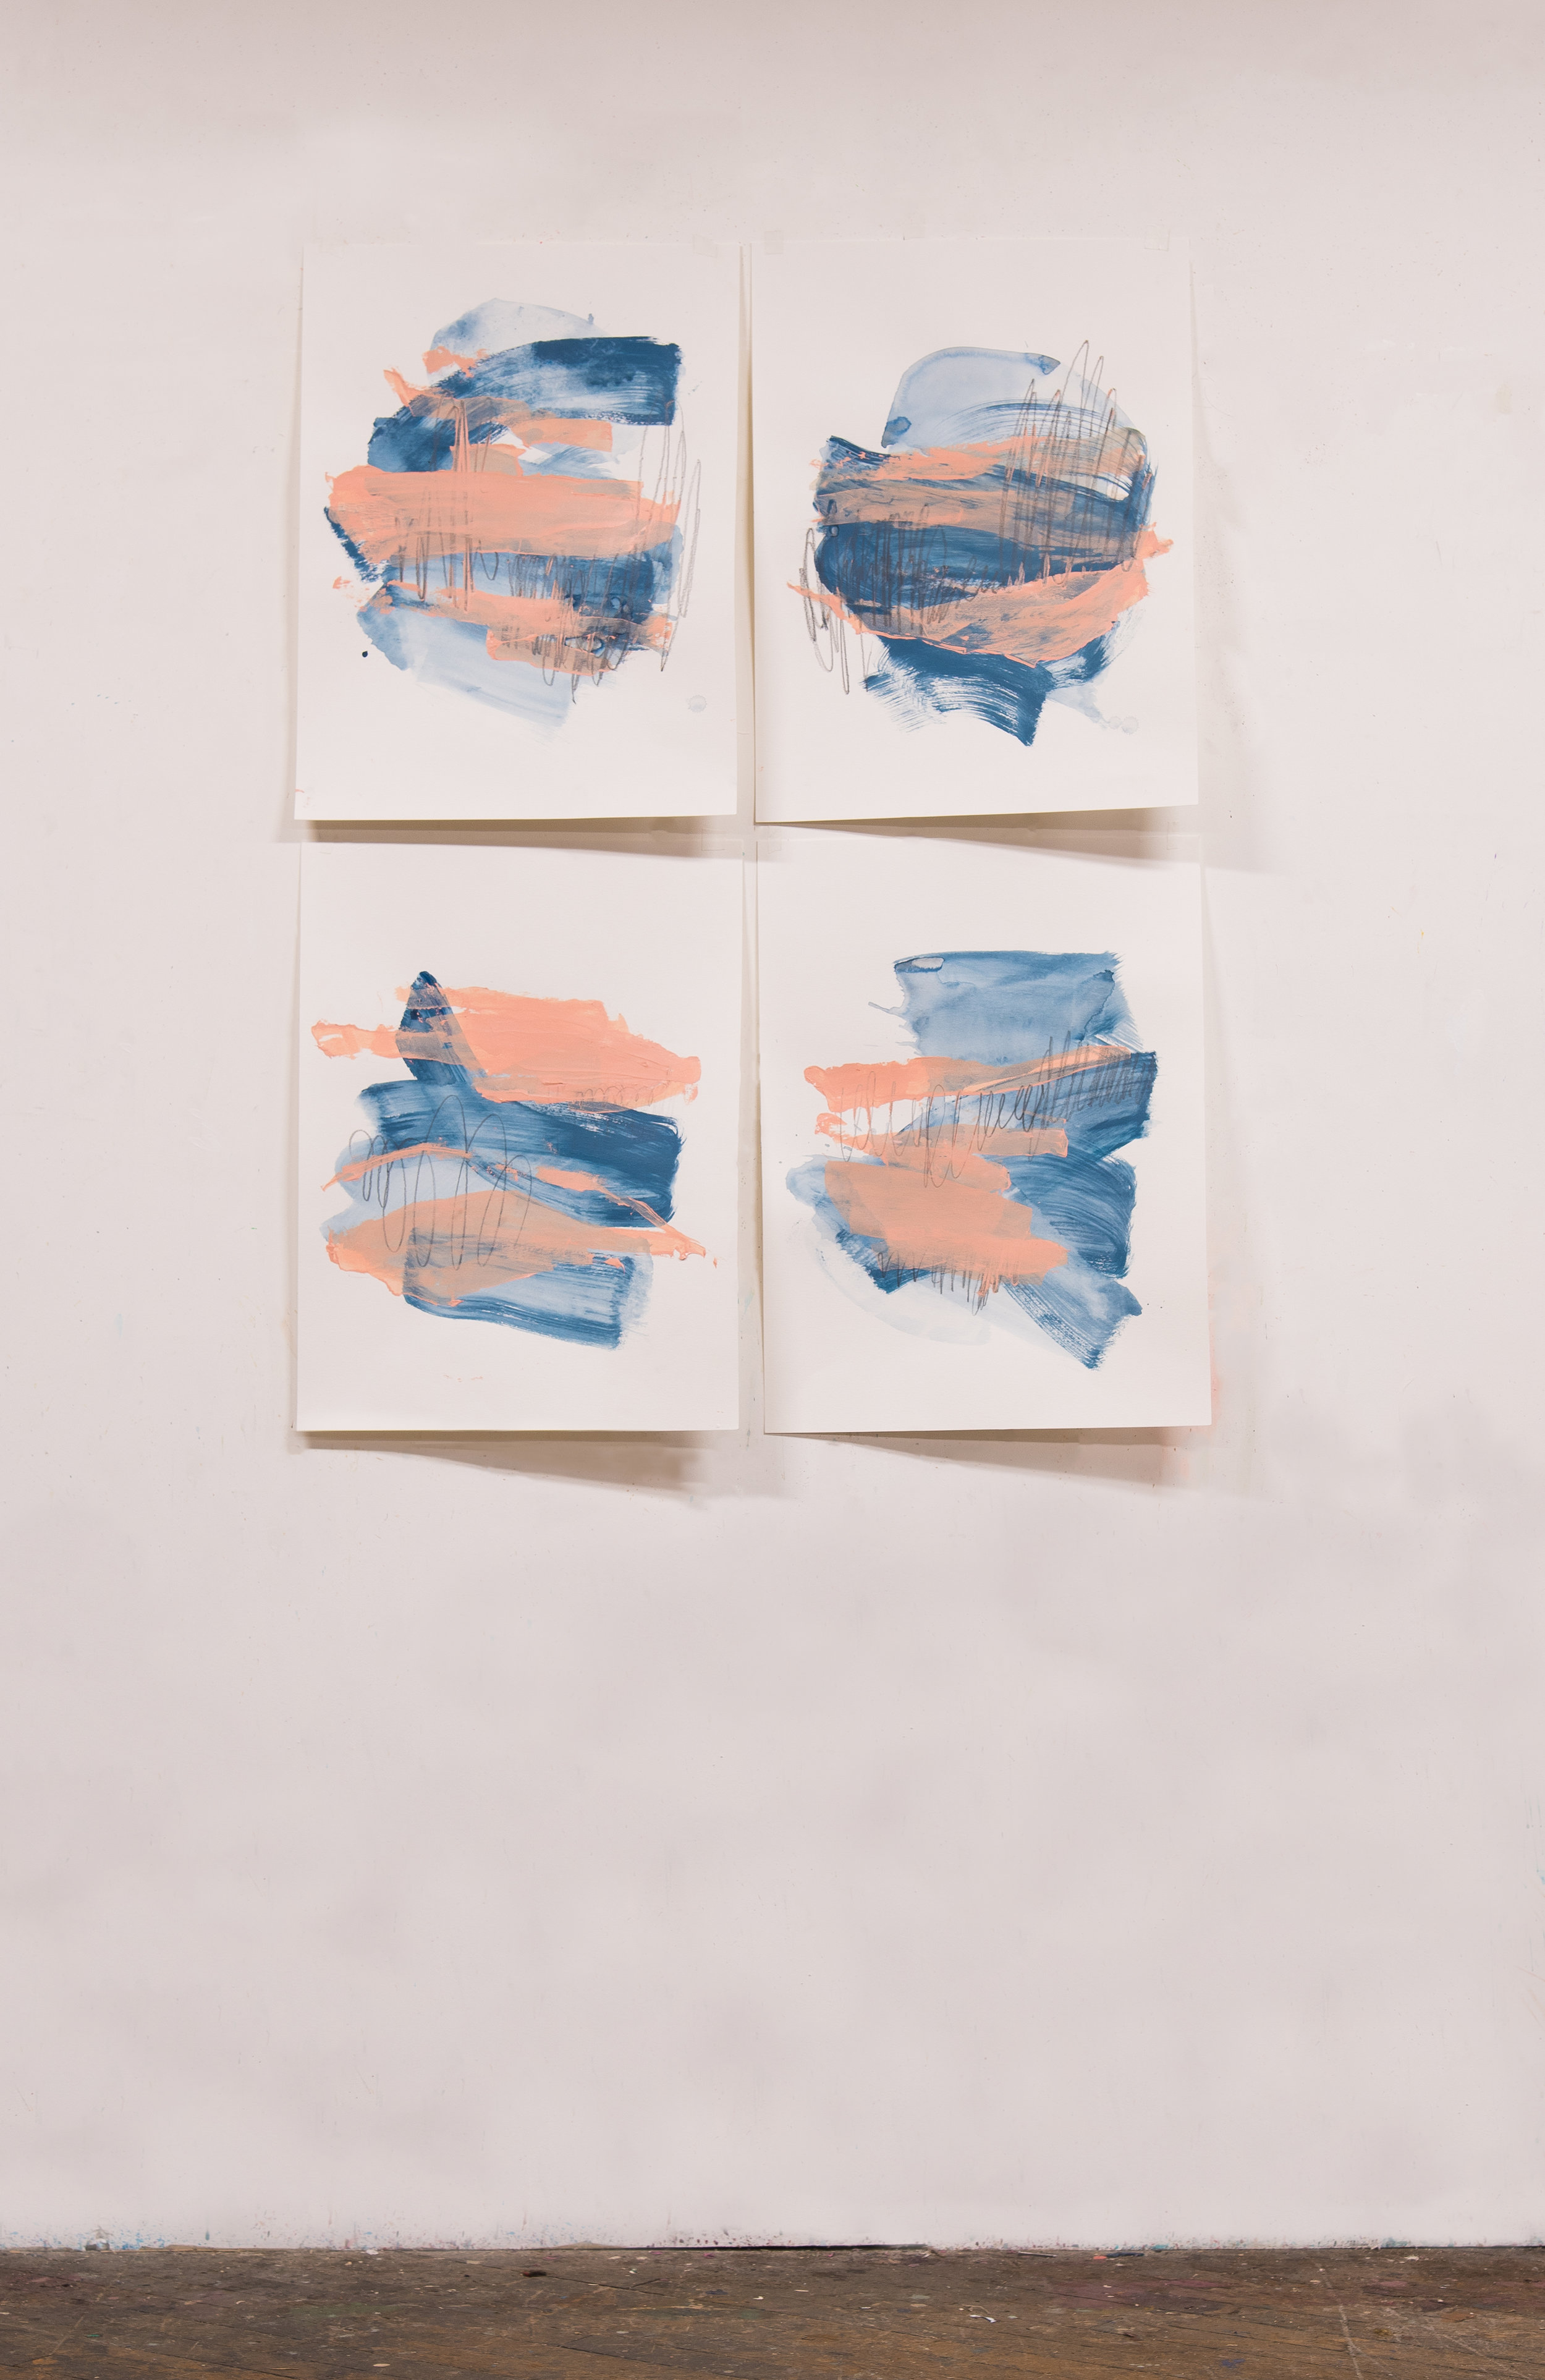 """Sweet Like Saltwater #1-4 , 18""""x24"""" each, acrylic + graphite on paper, 2018, available"""